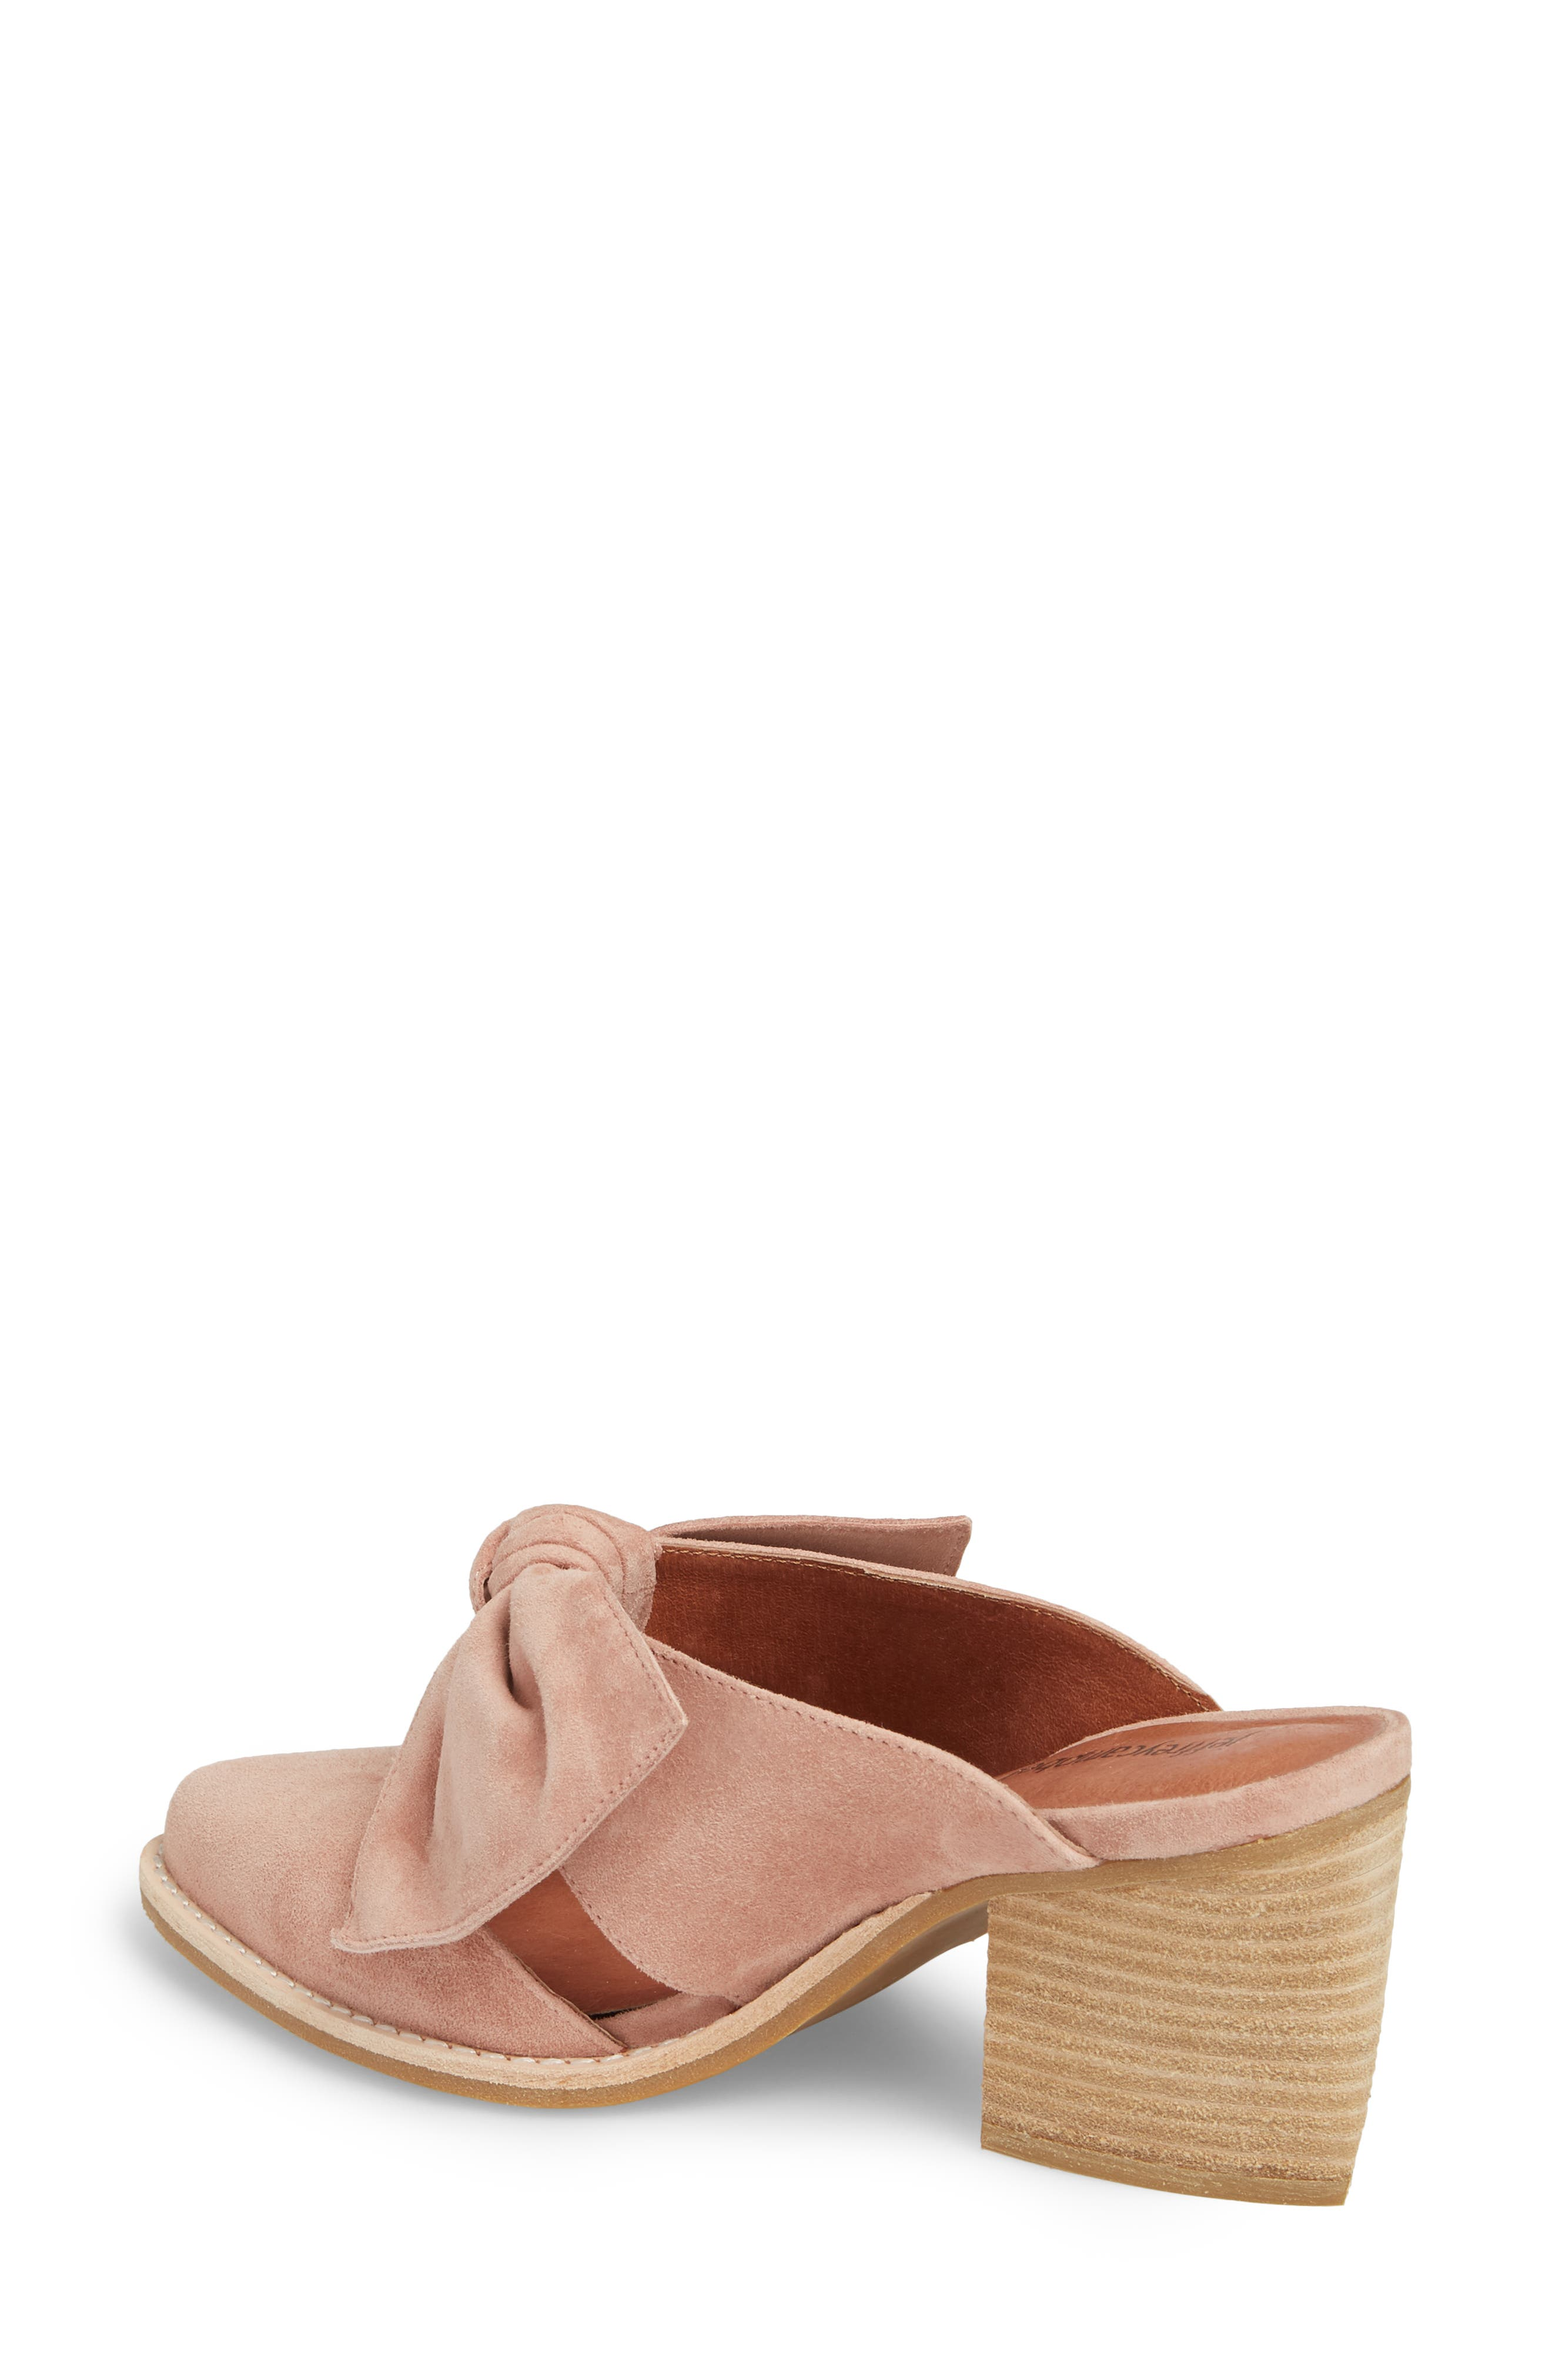 Cyrus Knotted Mary Jane Mule,                             Alternate thumbnail 2, color,                             Blush Suede